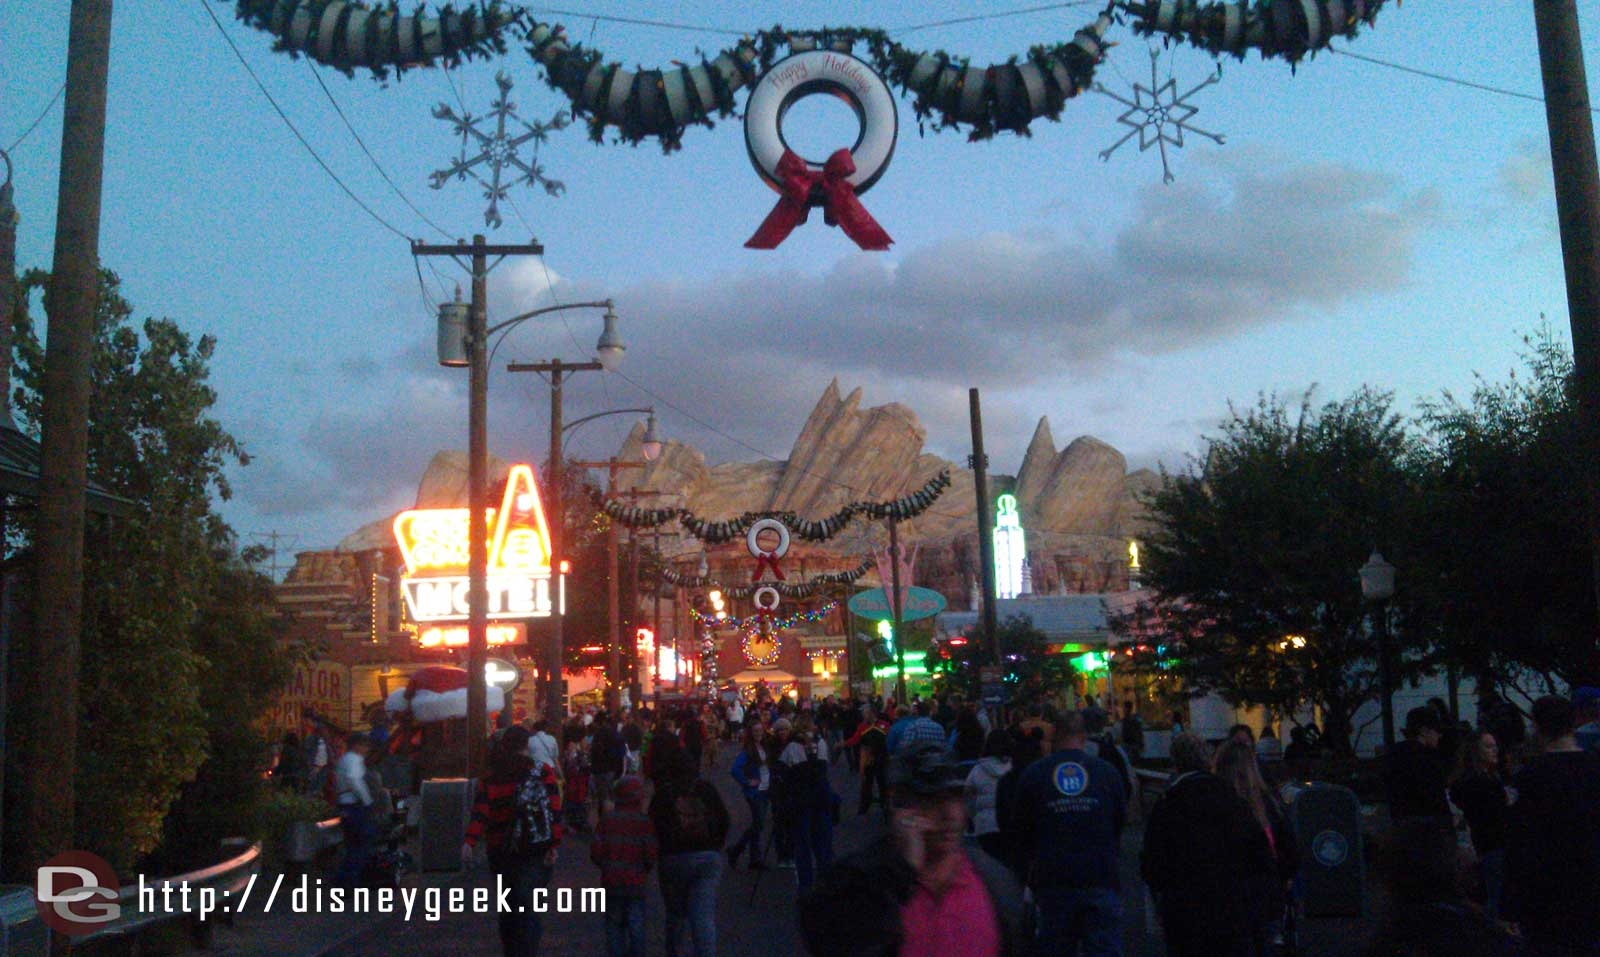 #CarsLand lights coming on.